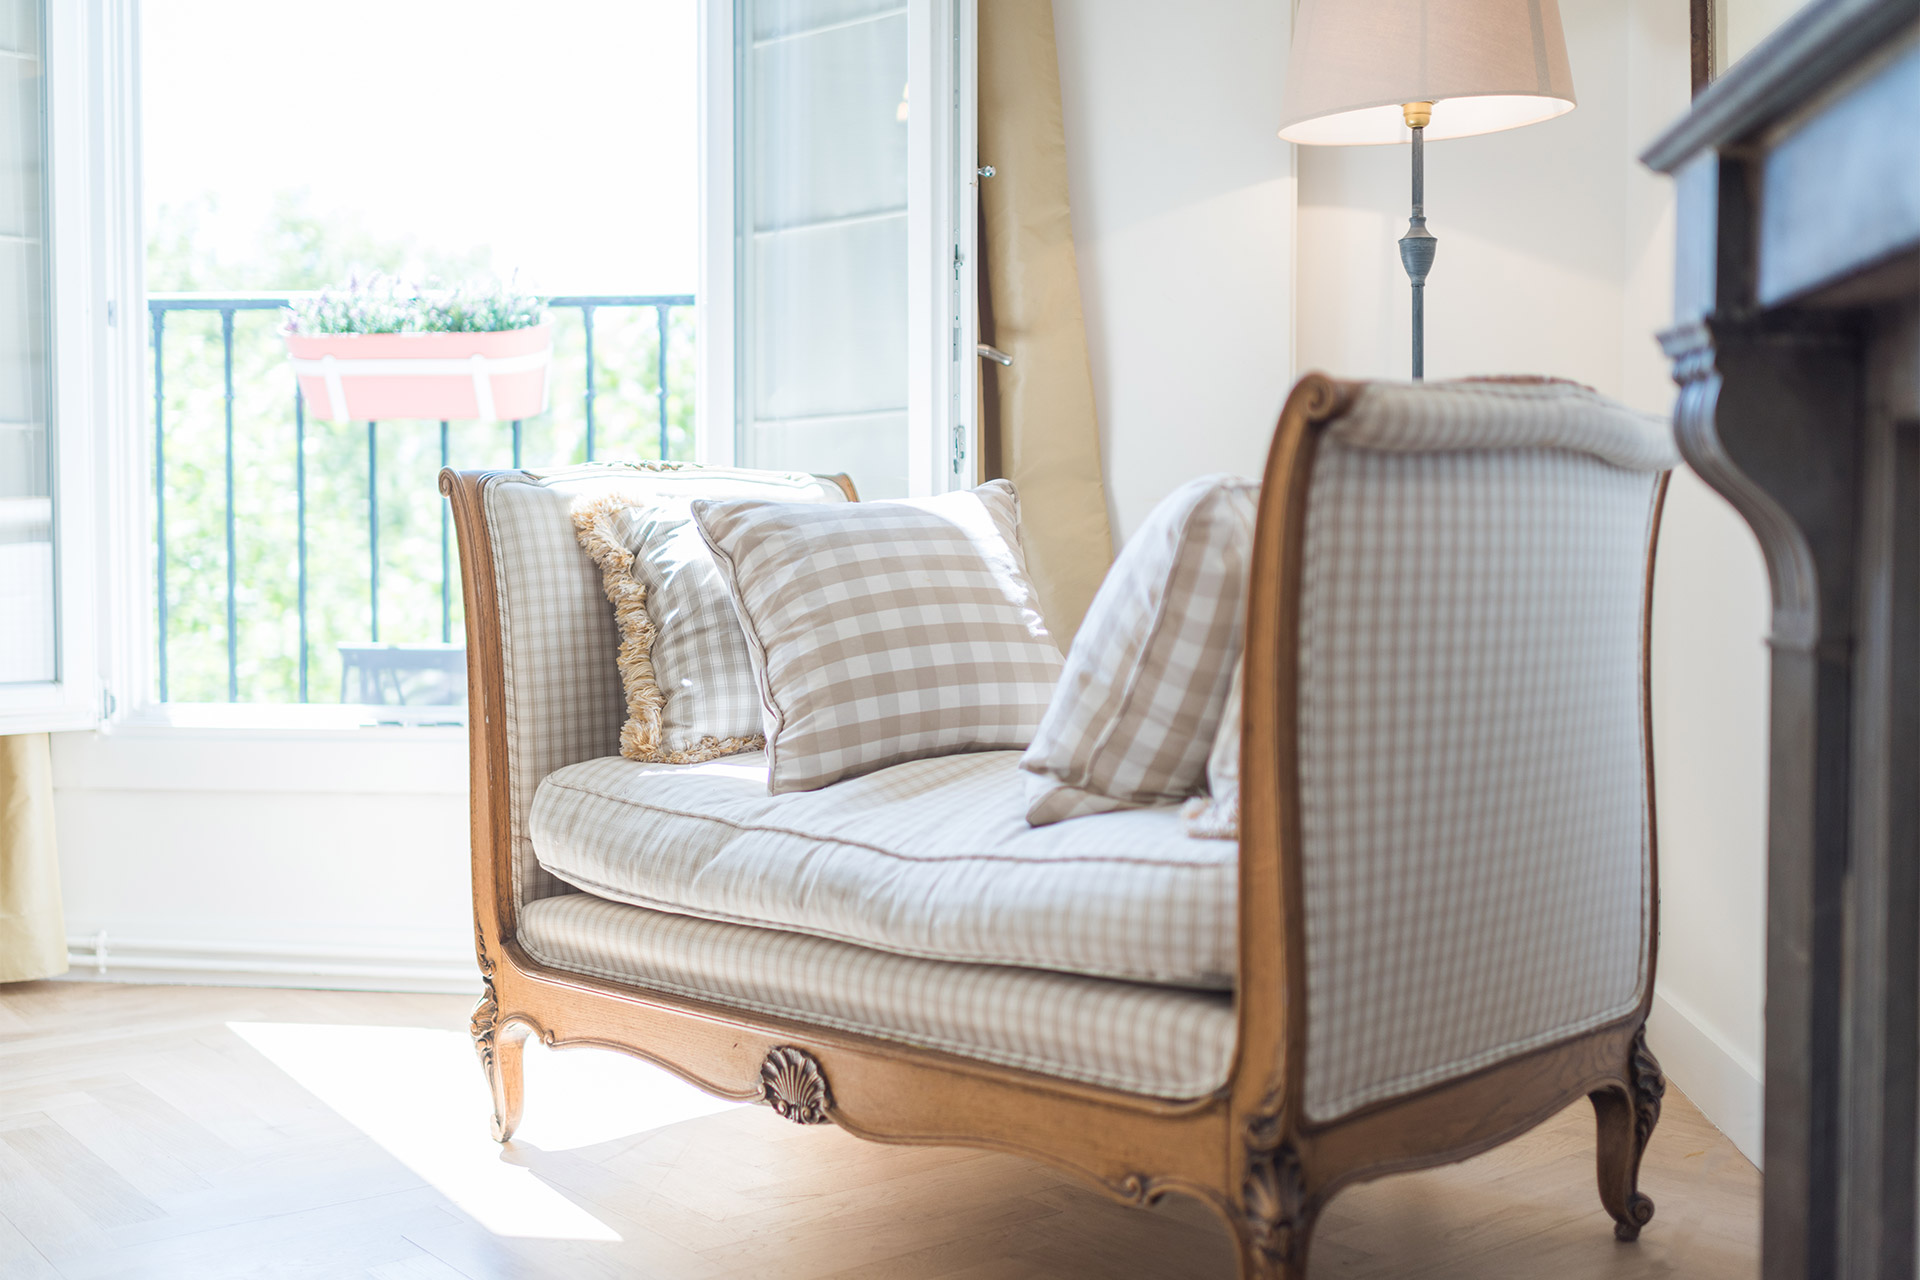 Charming antique love seat in the living room of the Saint Emilion vacation rental offered by Paris Perfect